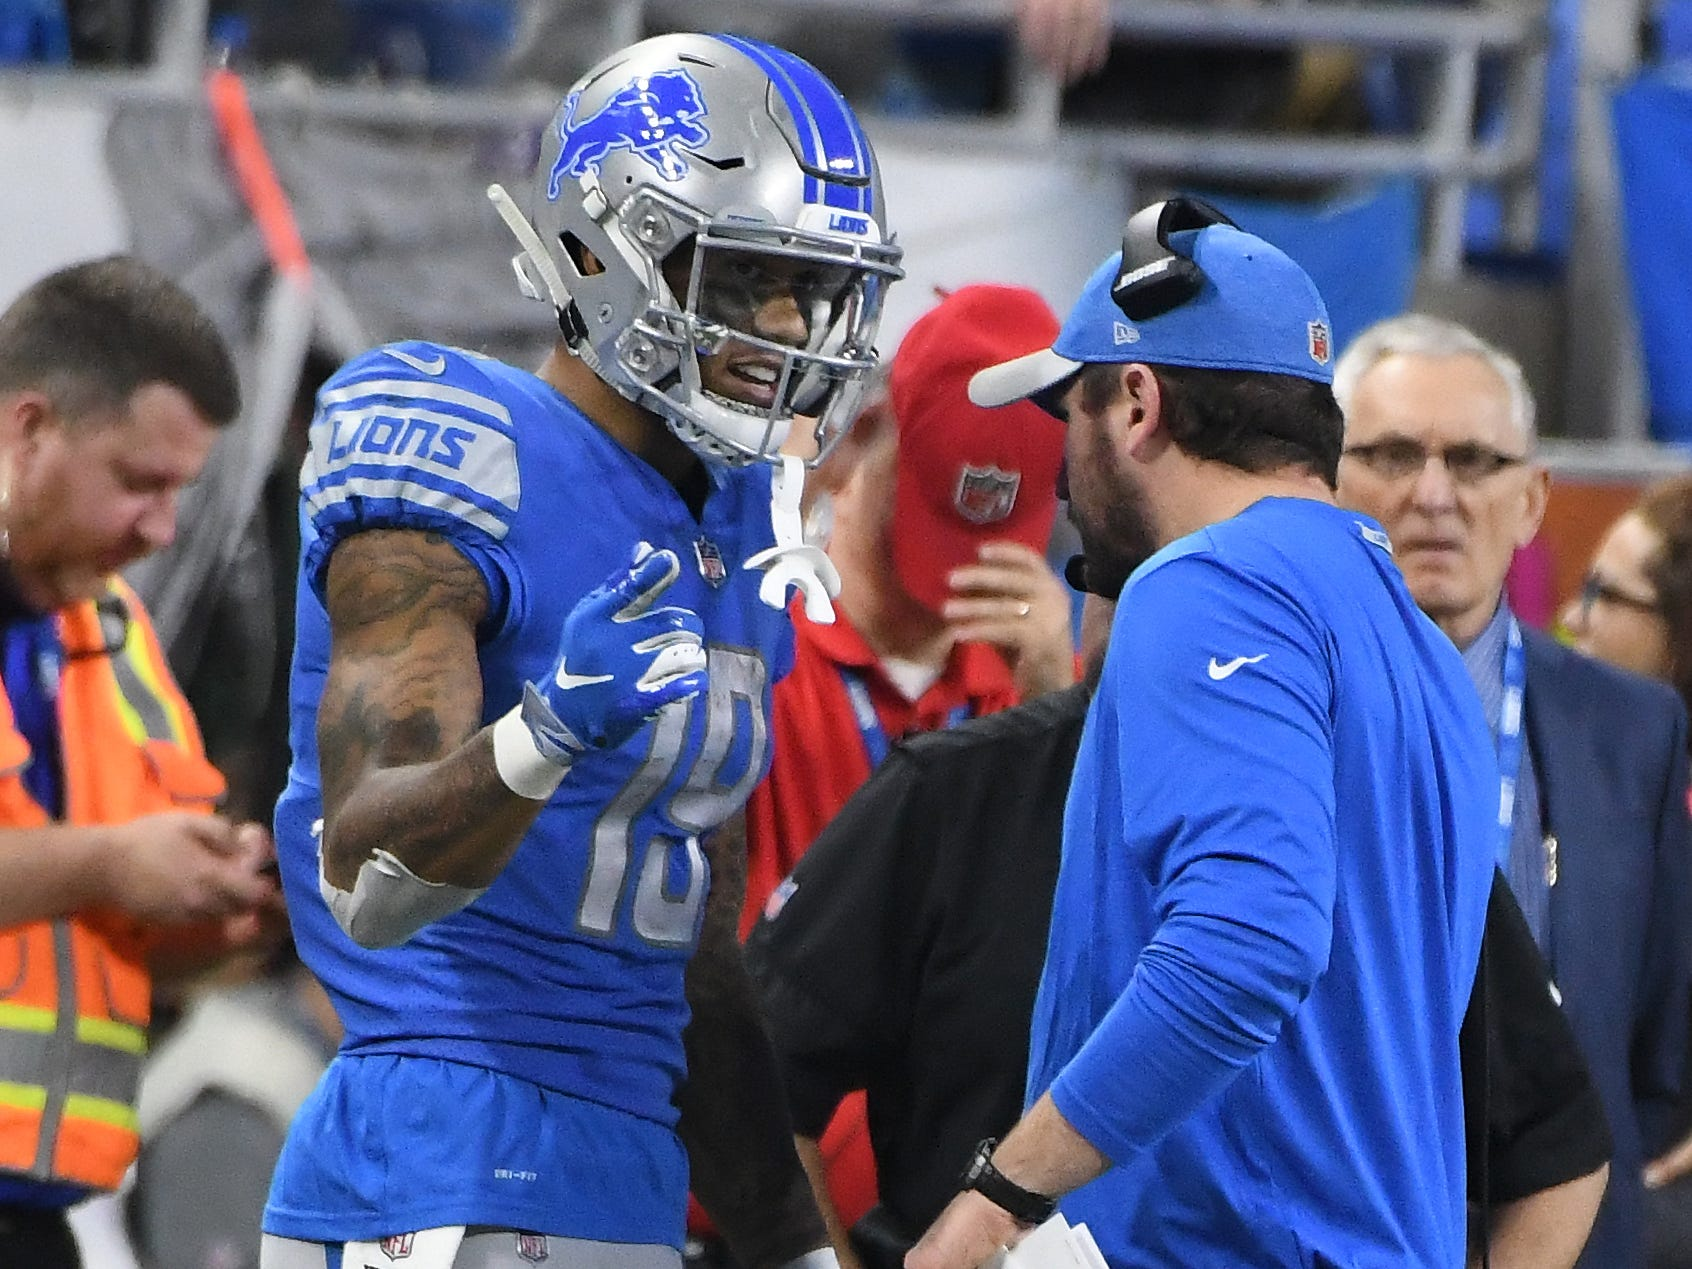 After an incompletion late in the fourth quarter, Detroit wide receiver Kenny Golladay went over and talked with offensive coordinator Jim Bob Cooter late in the fourth quarter.